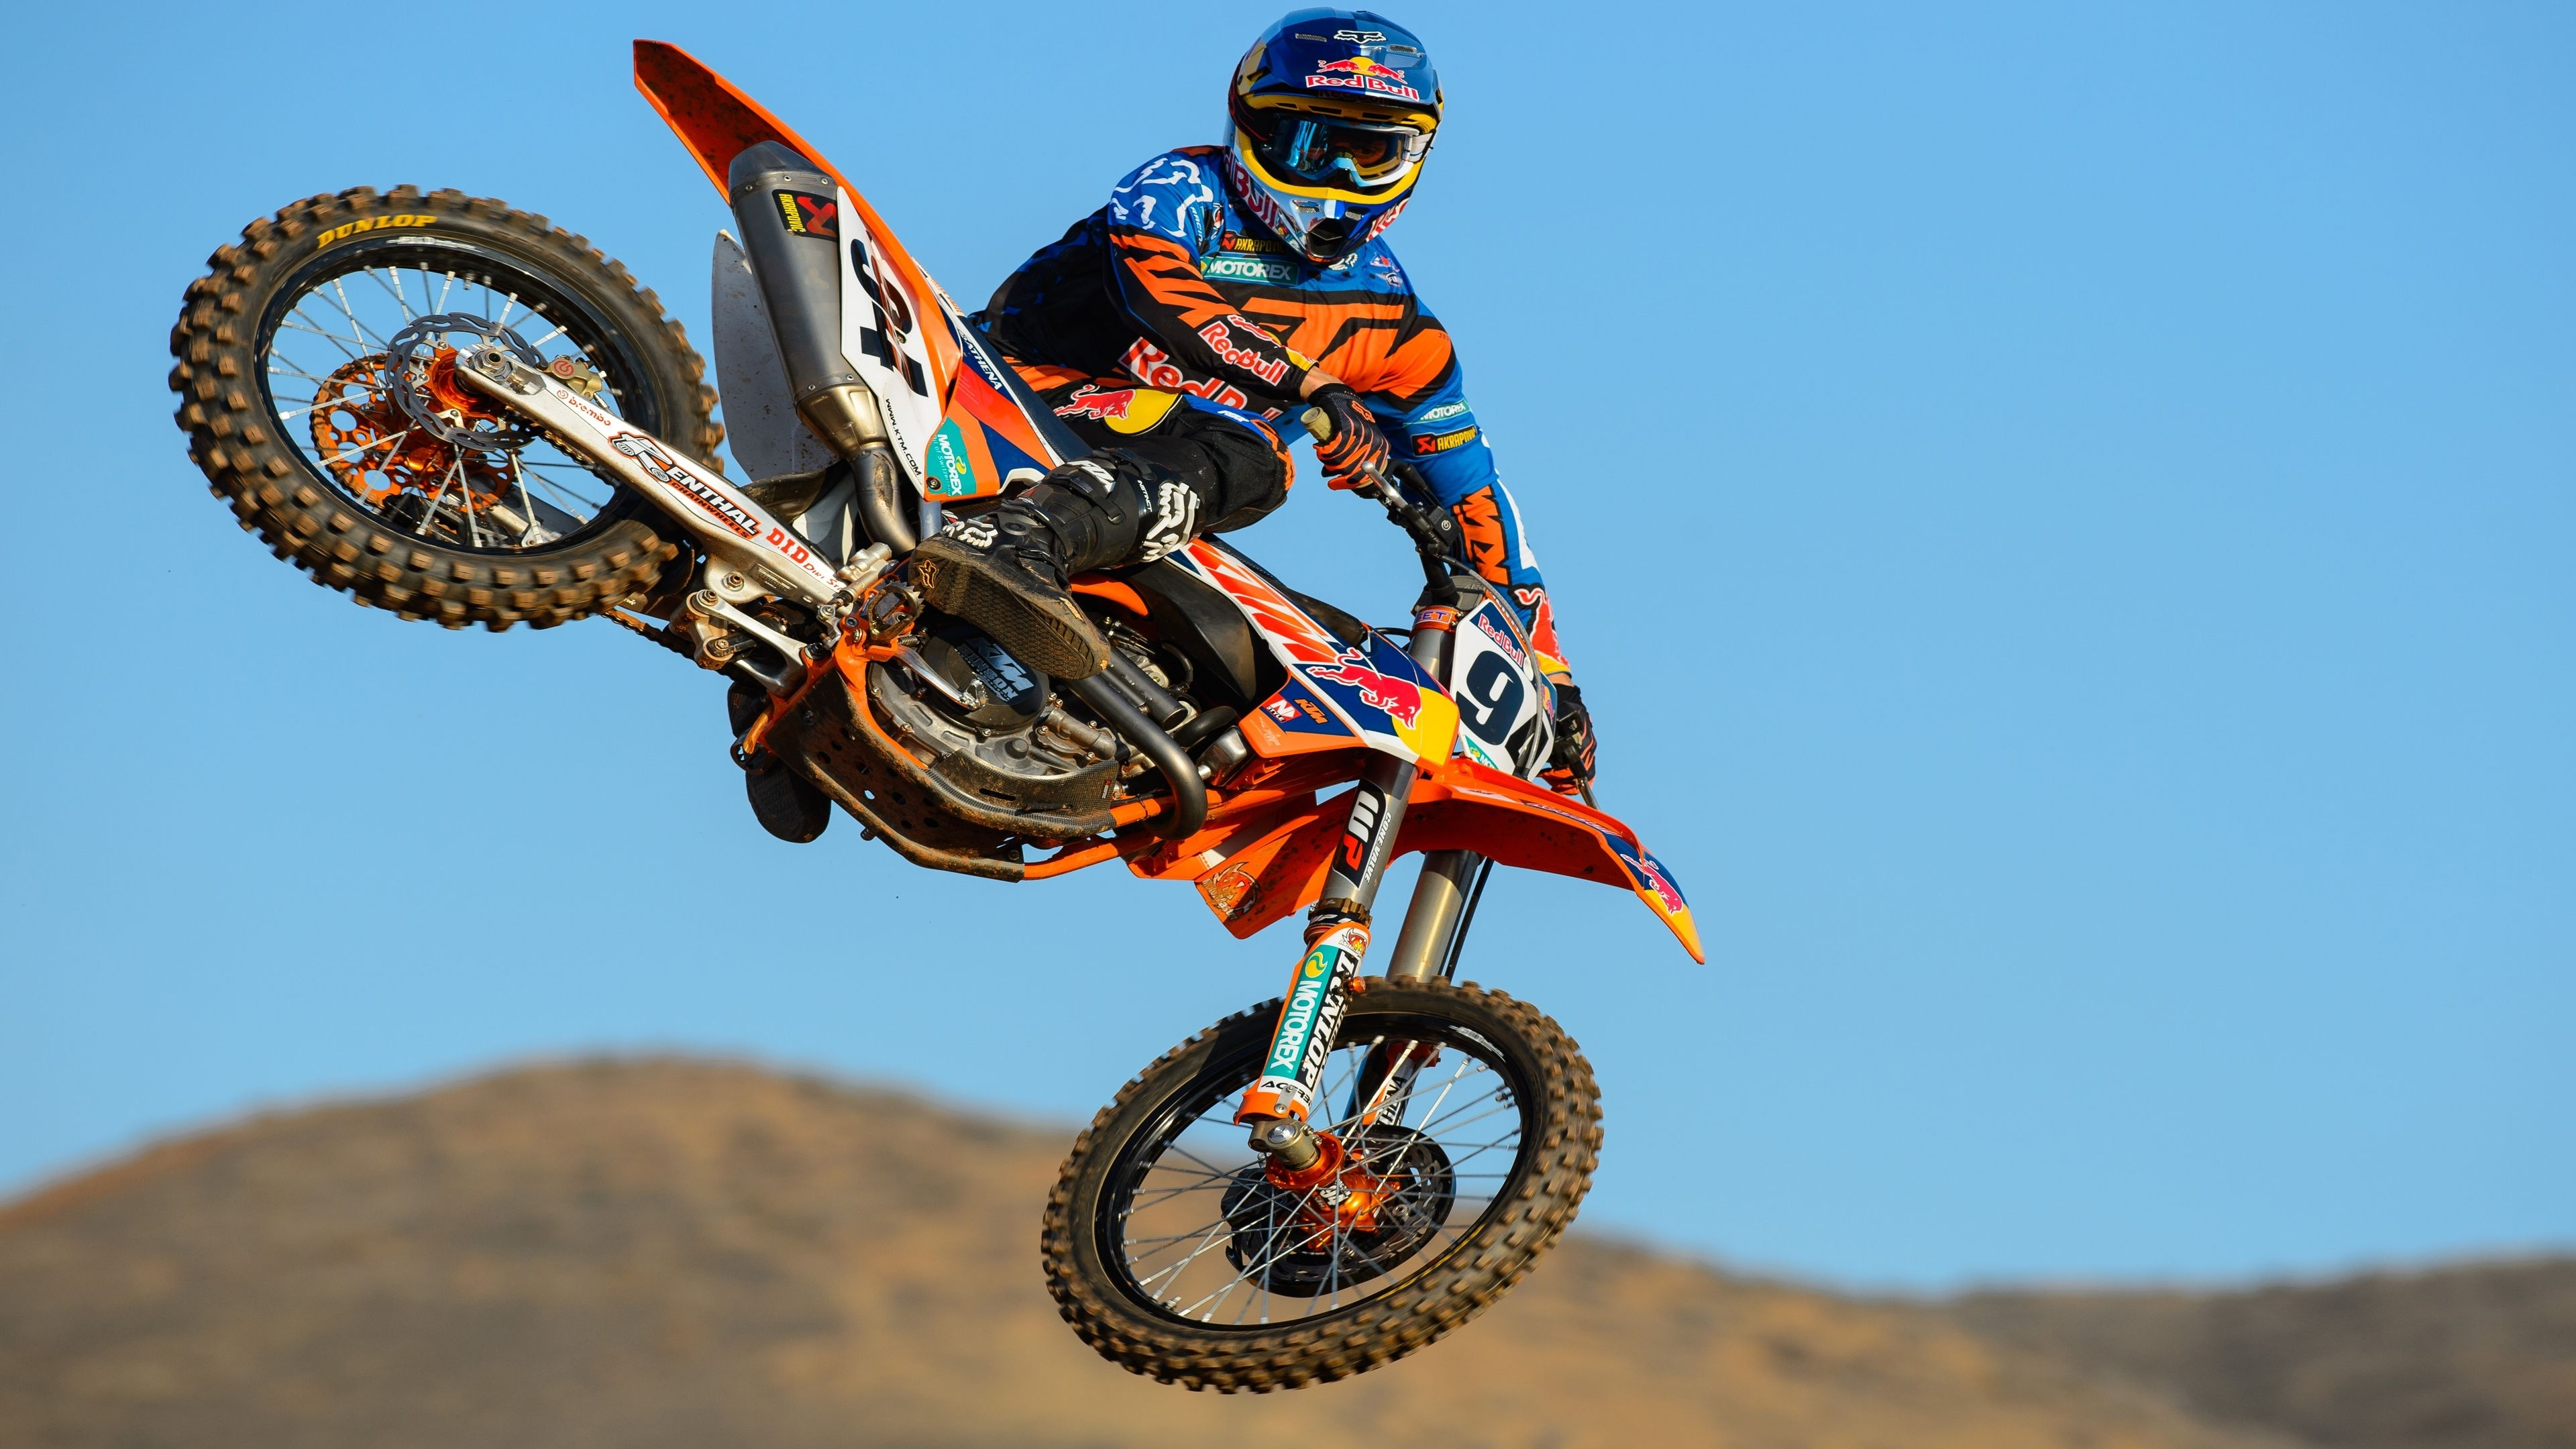 10 New Ktm Dirt Bike Wallpaper FULL HD 1920×1080 For PC Desktop